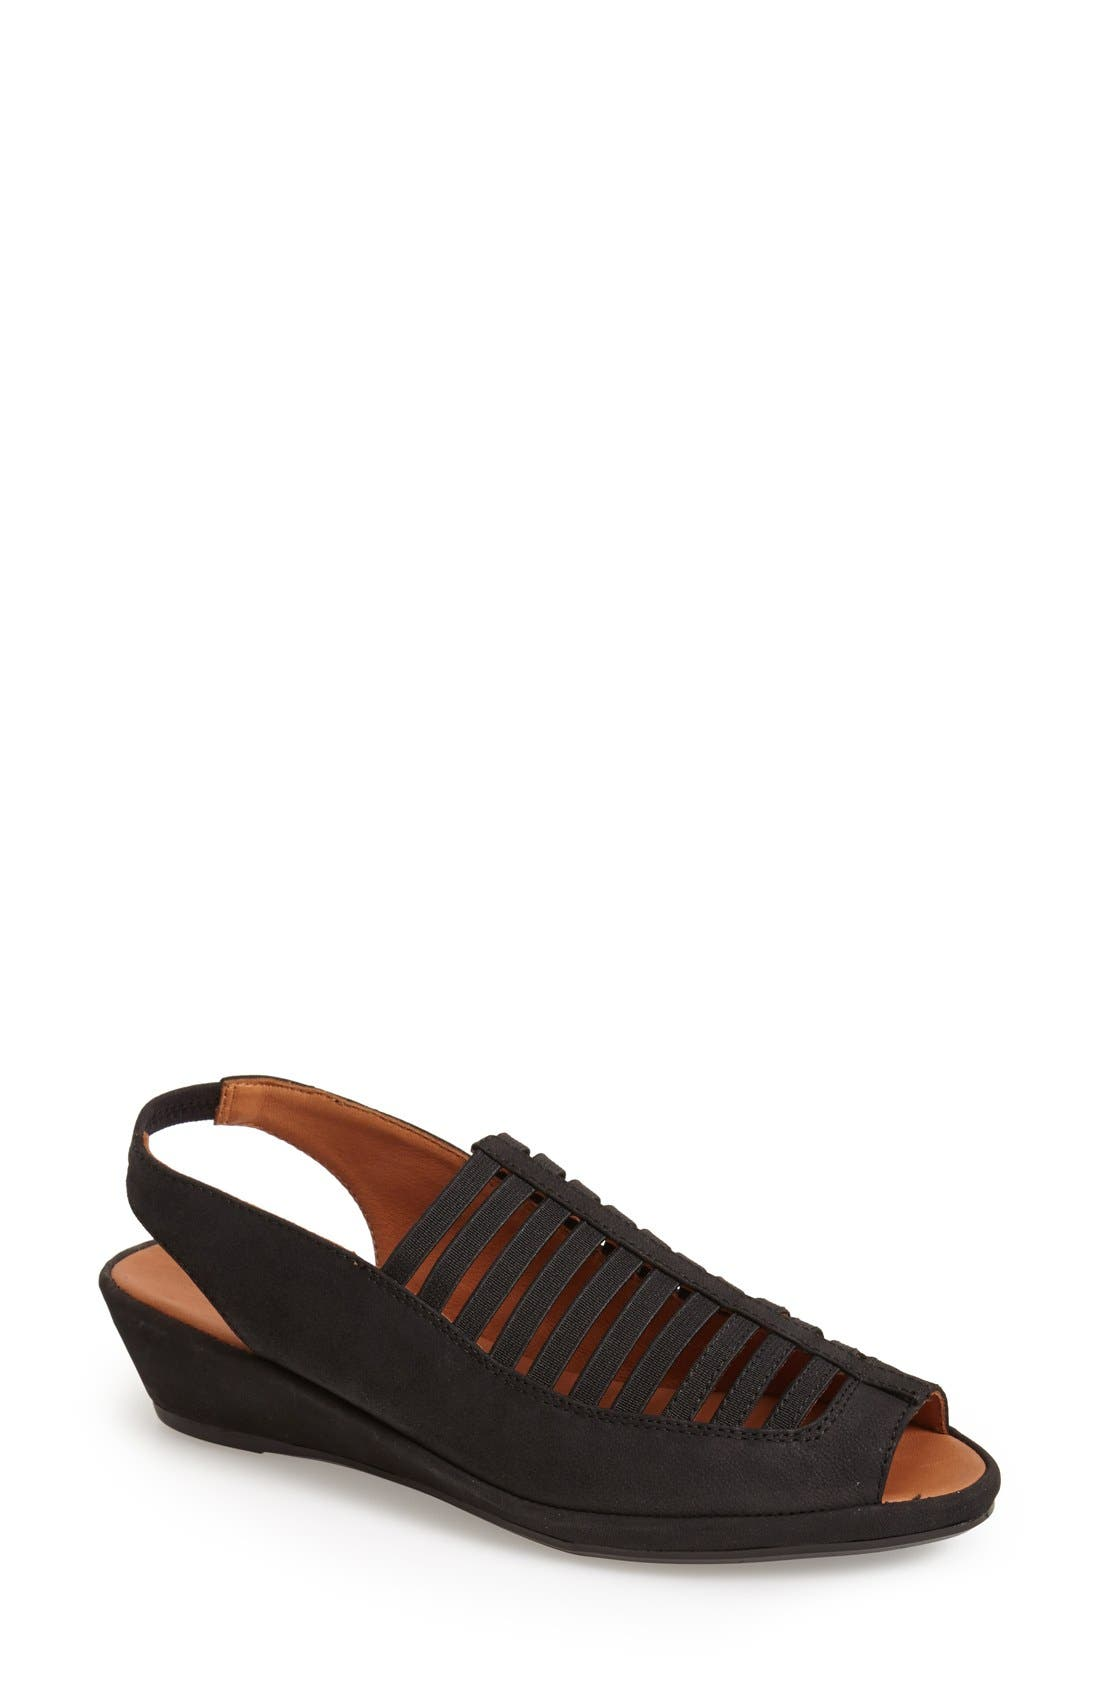 by Kenneth Cole 'Lee' Sandal,                             Main thumbnail 2, color,